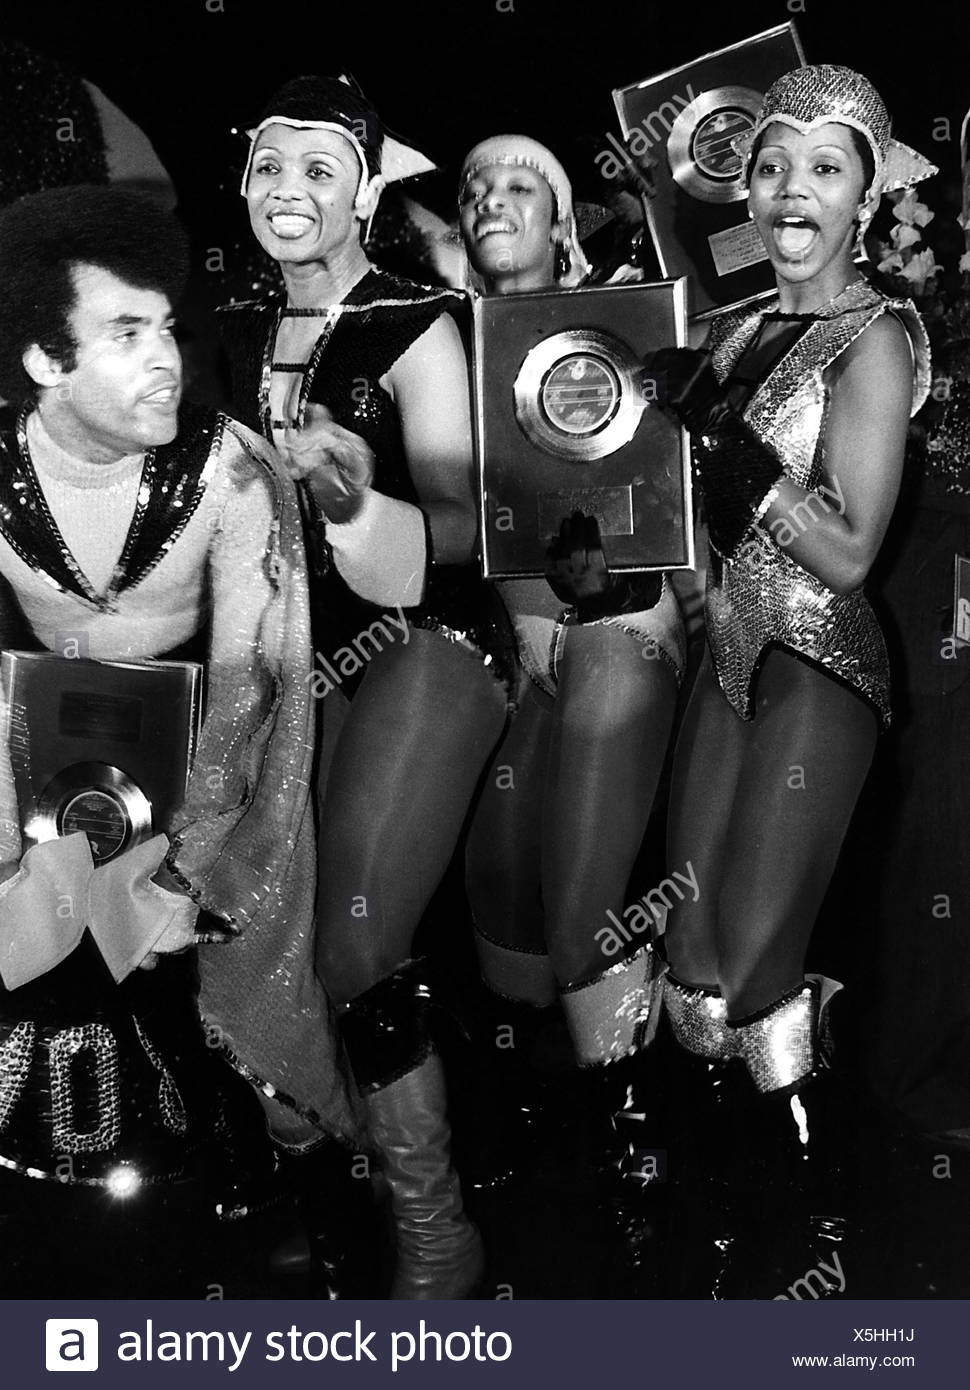 Boney M Caribbean Pop And Disco Group Formed In 1976 Picture With Golden Record 1980s Additional Rights Clearances NA